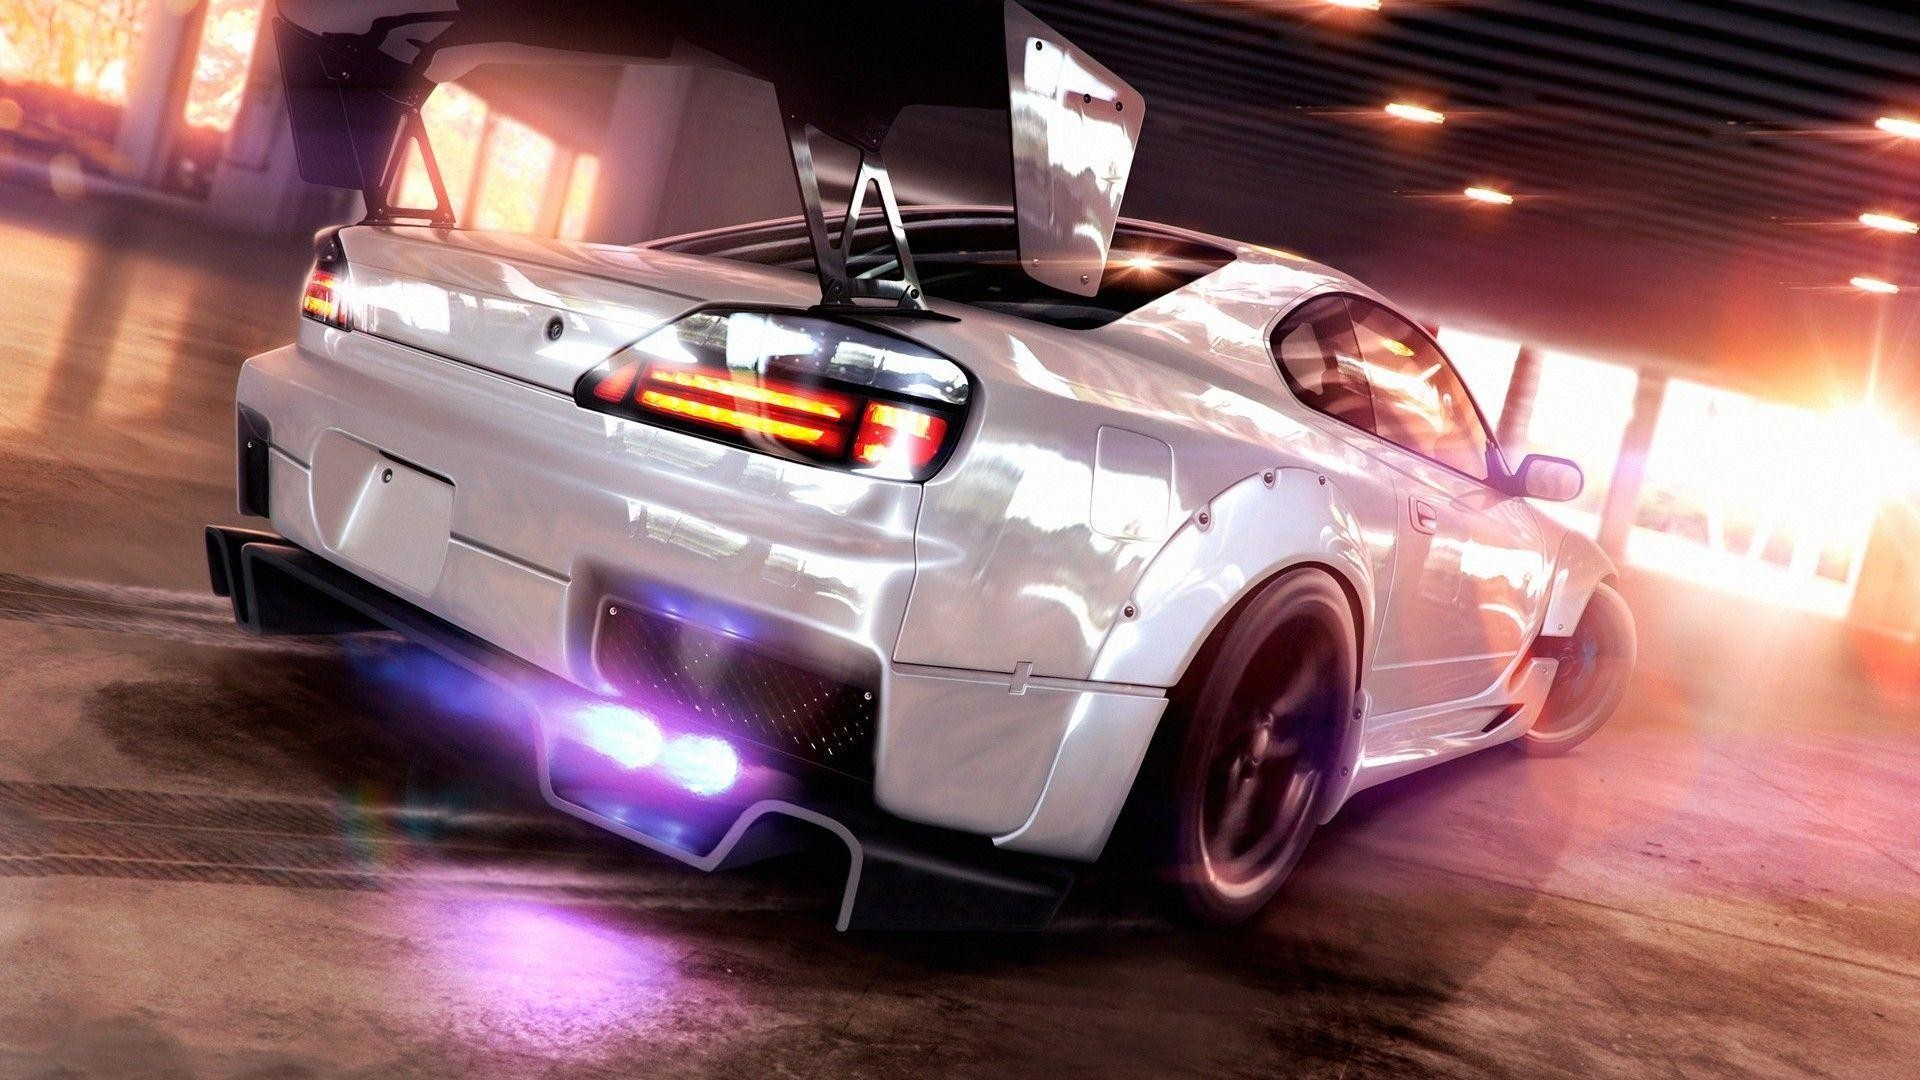 1920x1080 Need For Speed Wallpapers - HD Wallpapers Inn